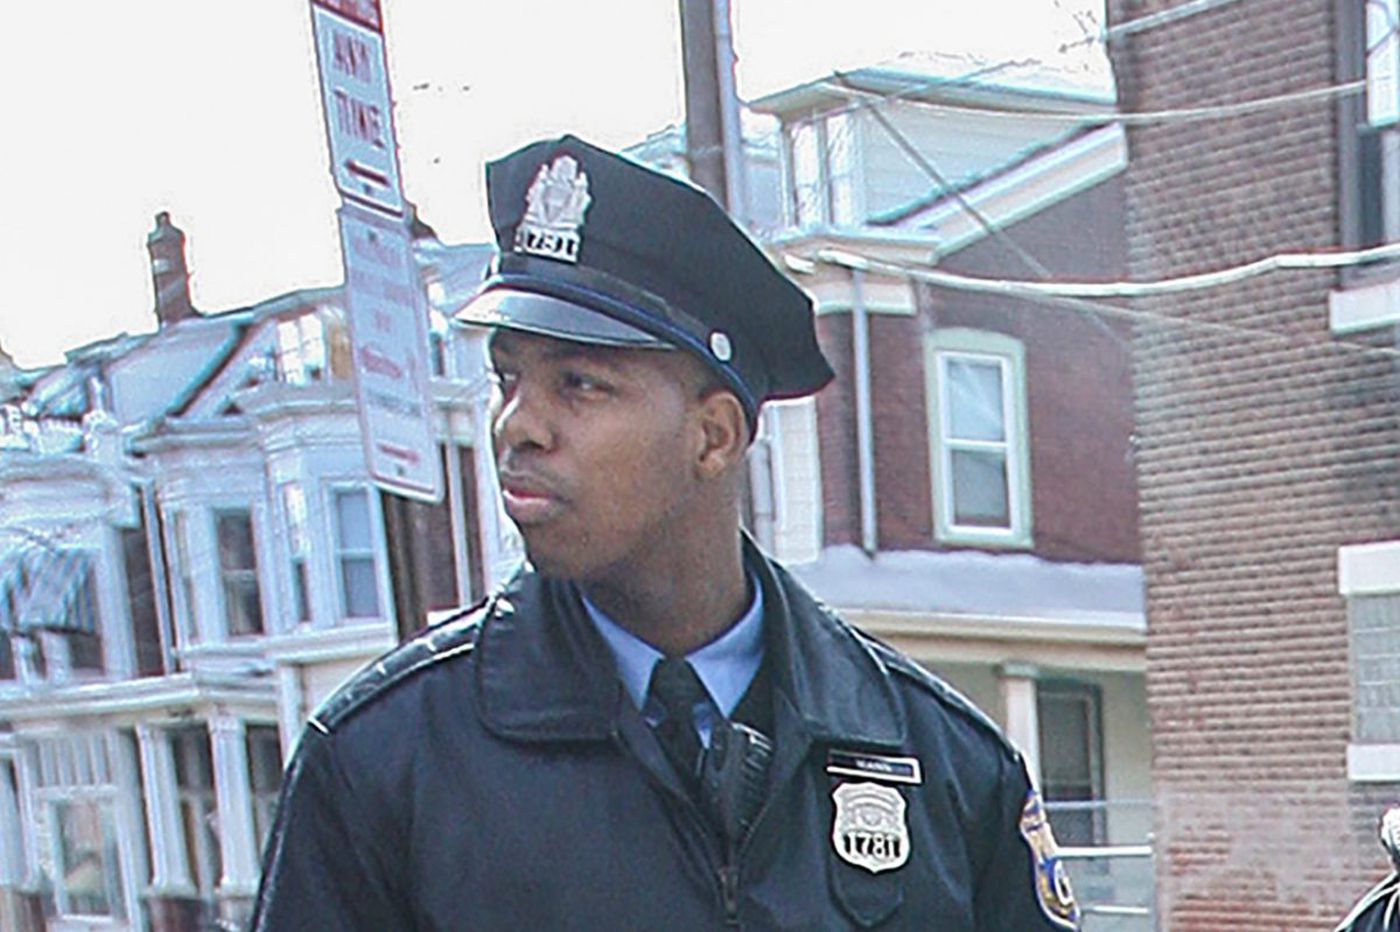 Fired Philly cop who shot 3 men is back on the beat